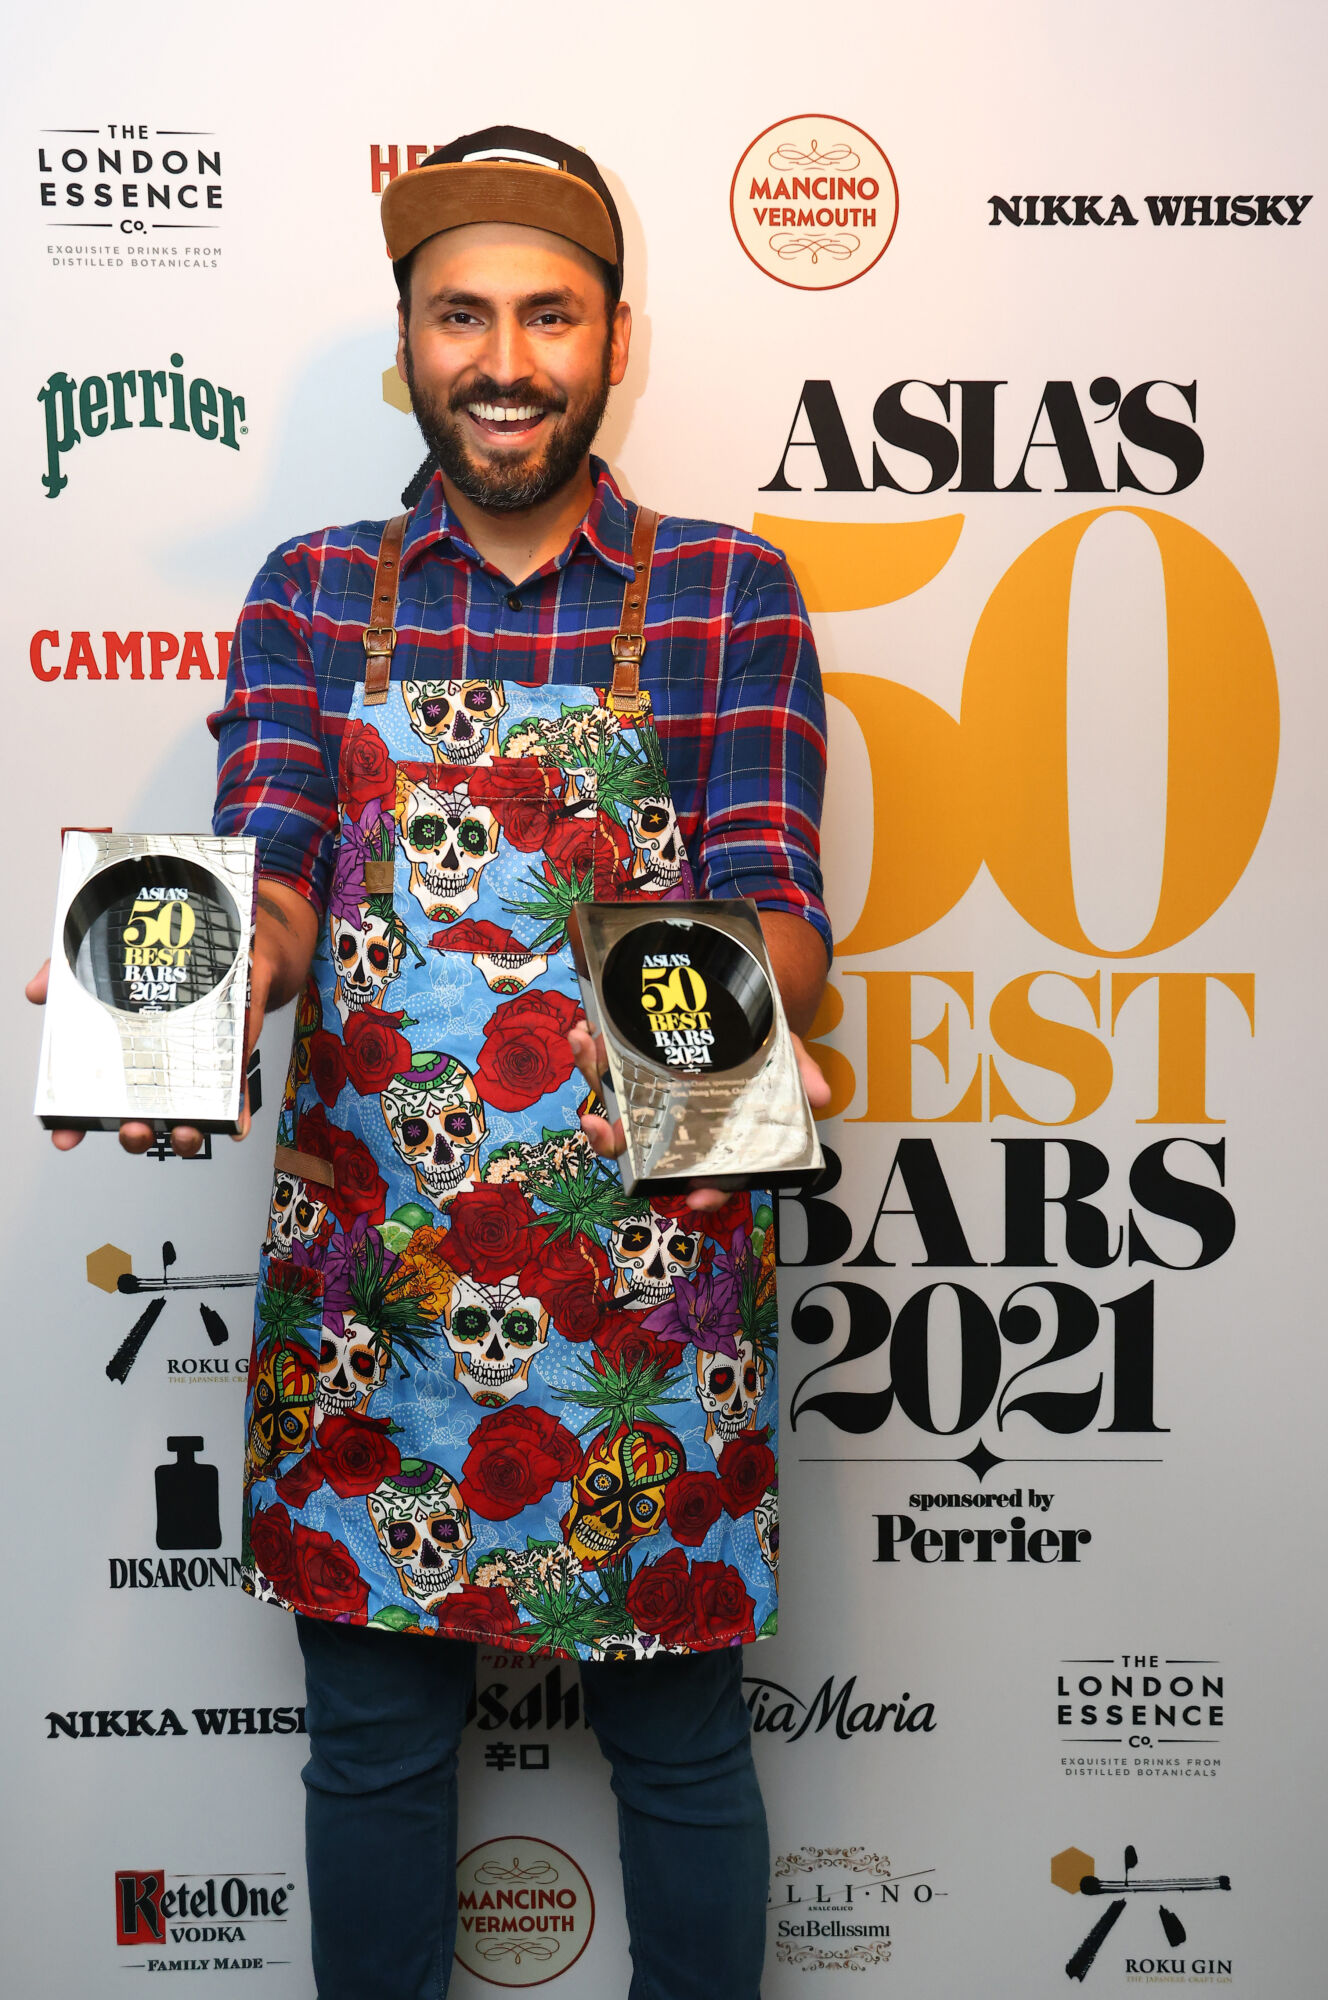 Coa - The Best Bar in Asia 2021, sponsored by Perrier